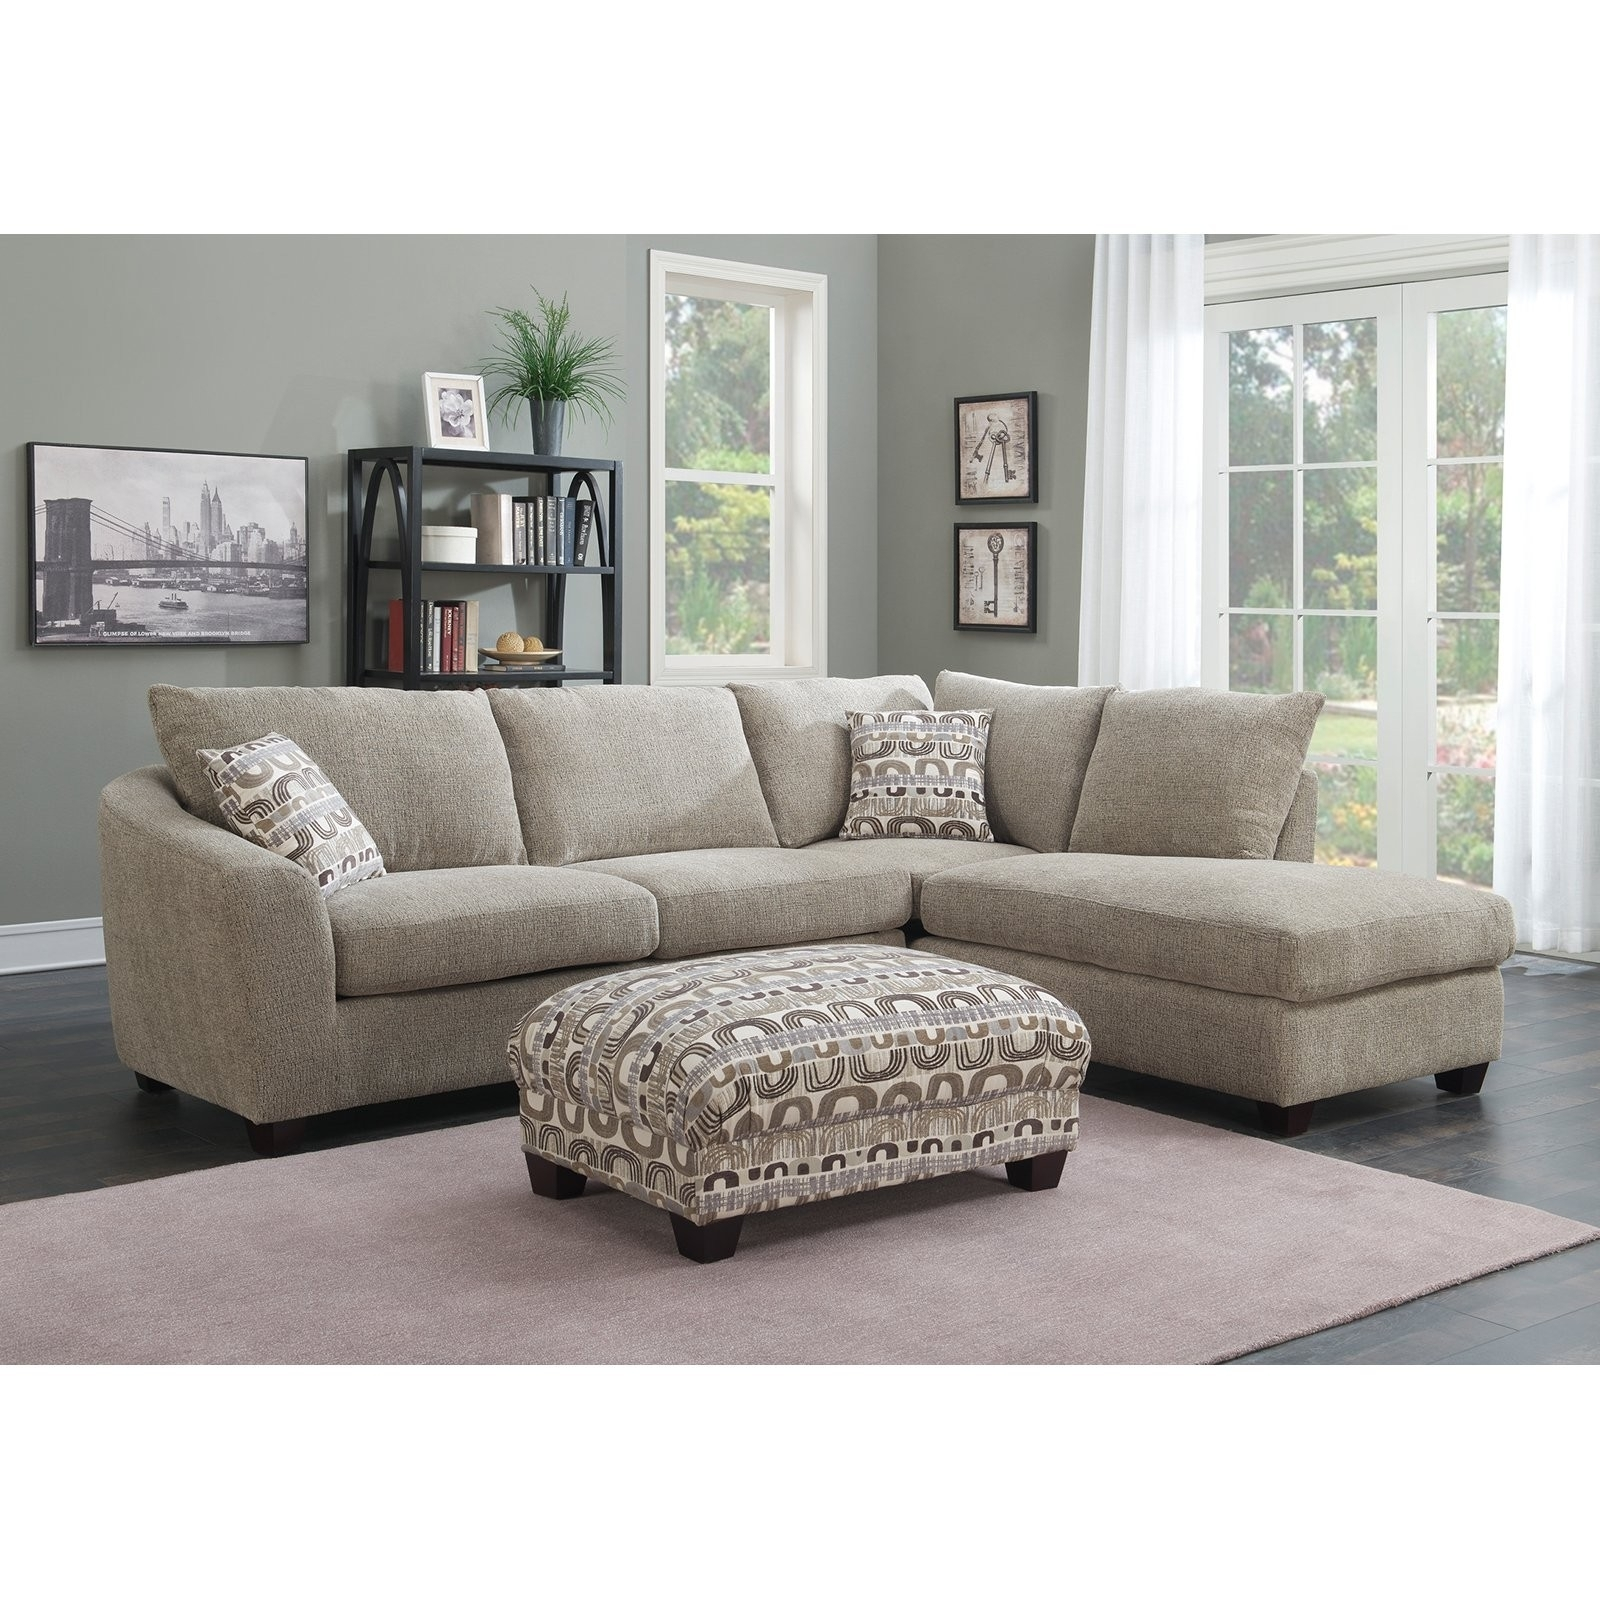 2 Piece Sectional With Chaise Urban Small West Elm C regarding Avery 2 Piece Sectionals With Laf Armless Chaise (Image 1 of 30)